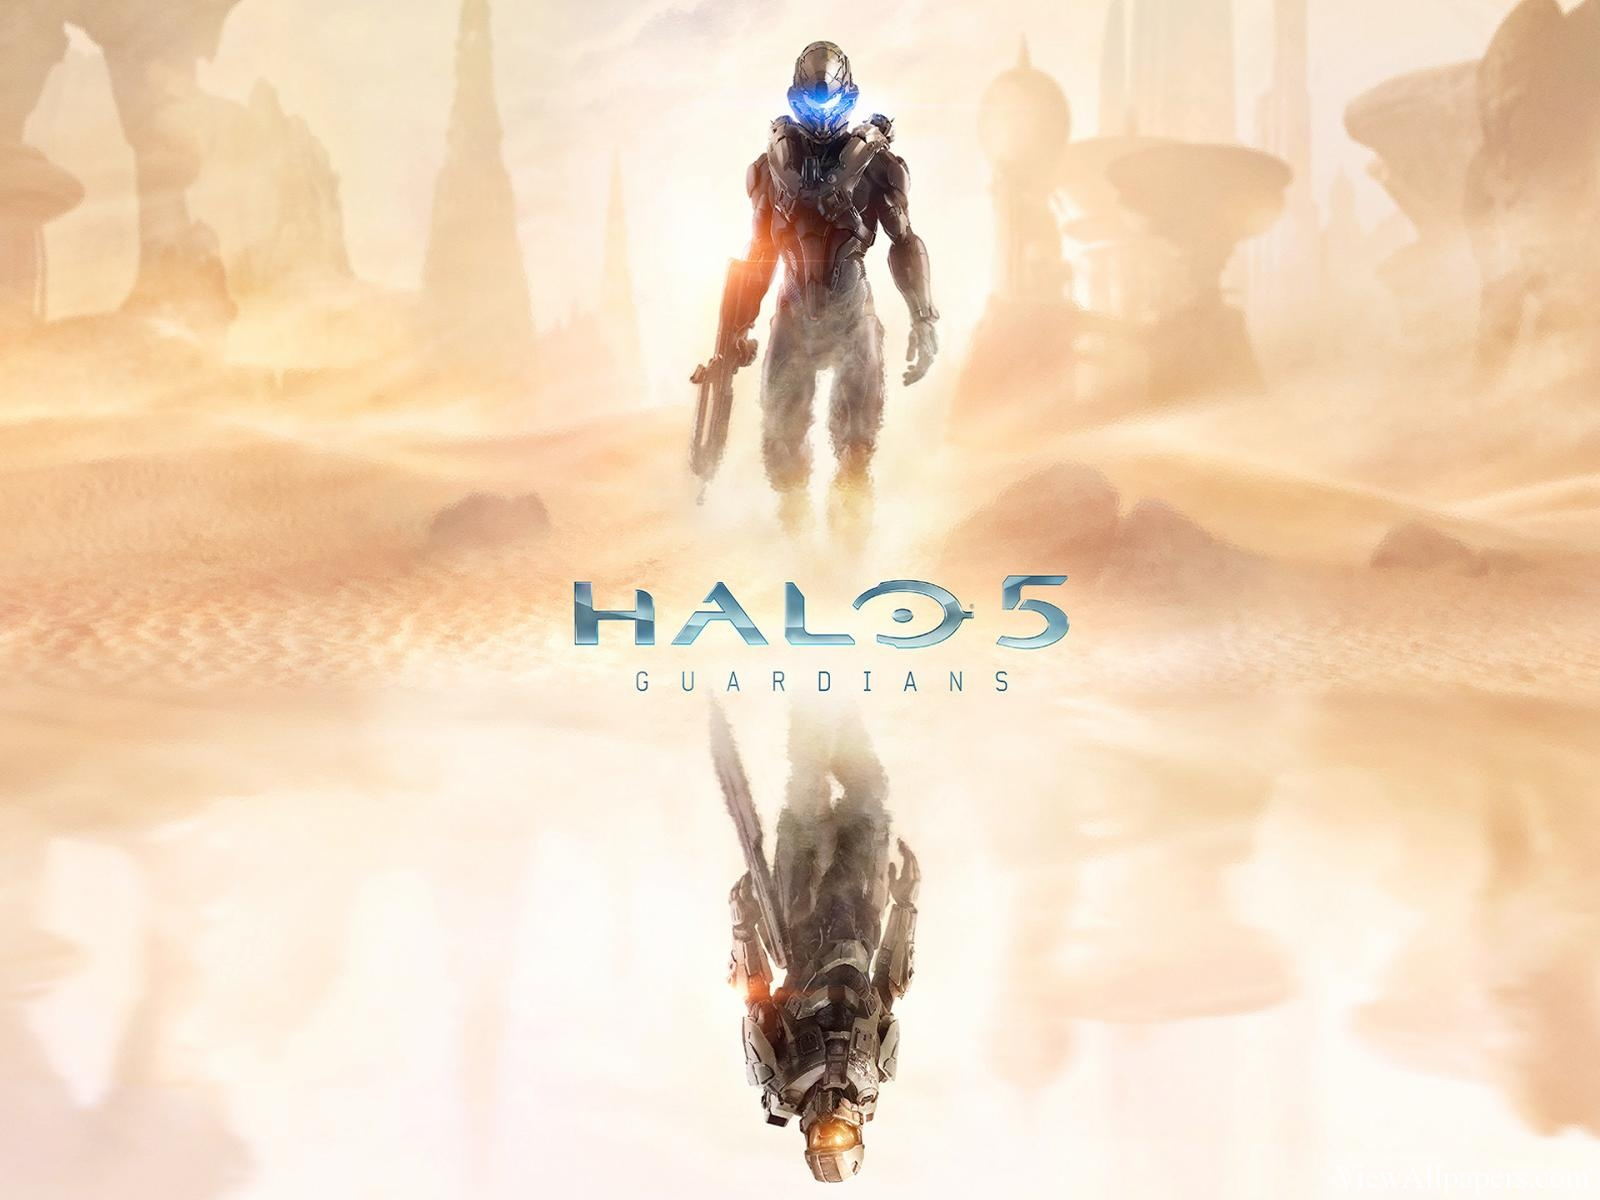 Wallpaper 2015 Halo 5 Guardians Wallpaper For PC computers desktop 1600x1200